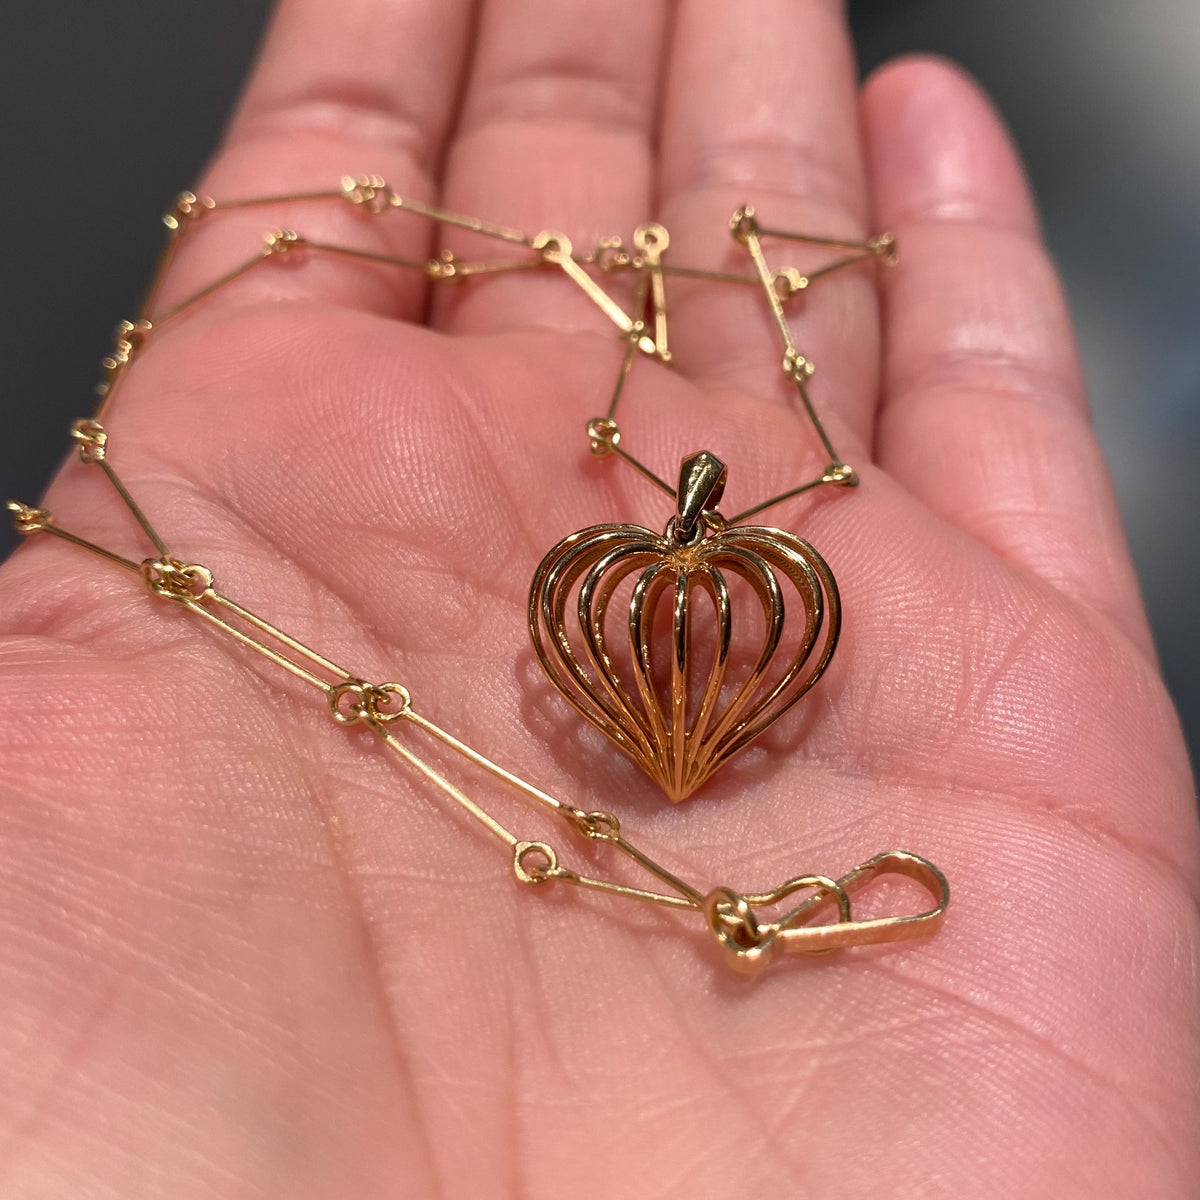 See through my heart, charm necklace.